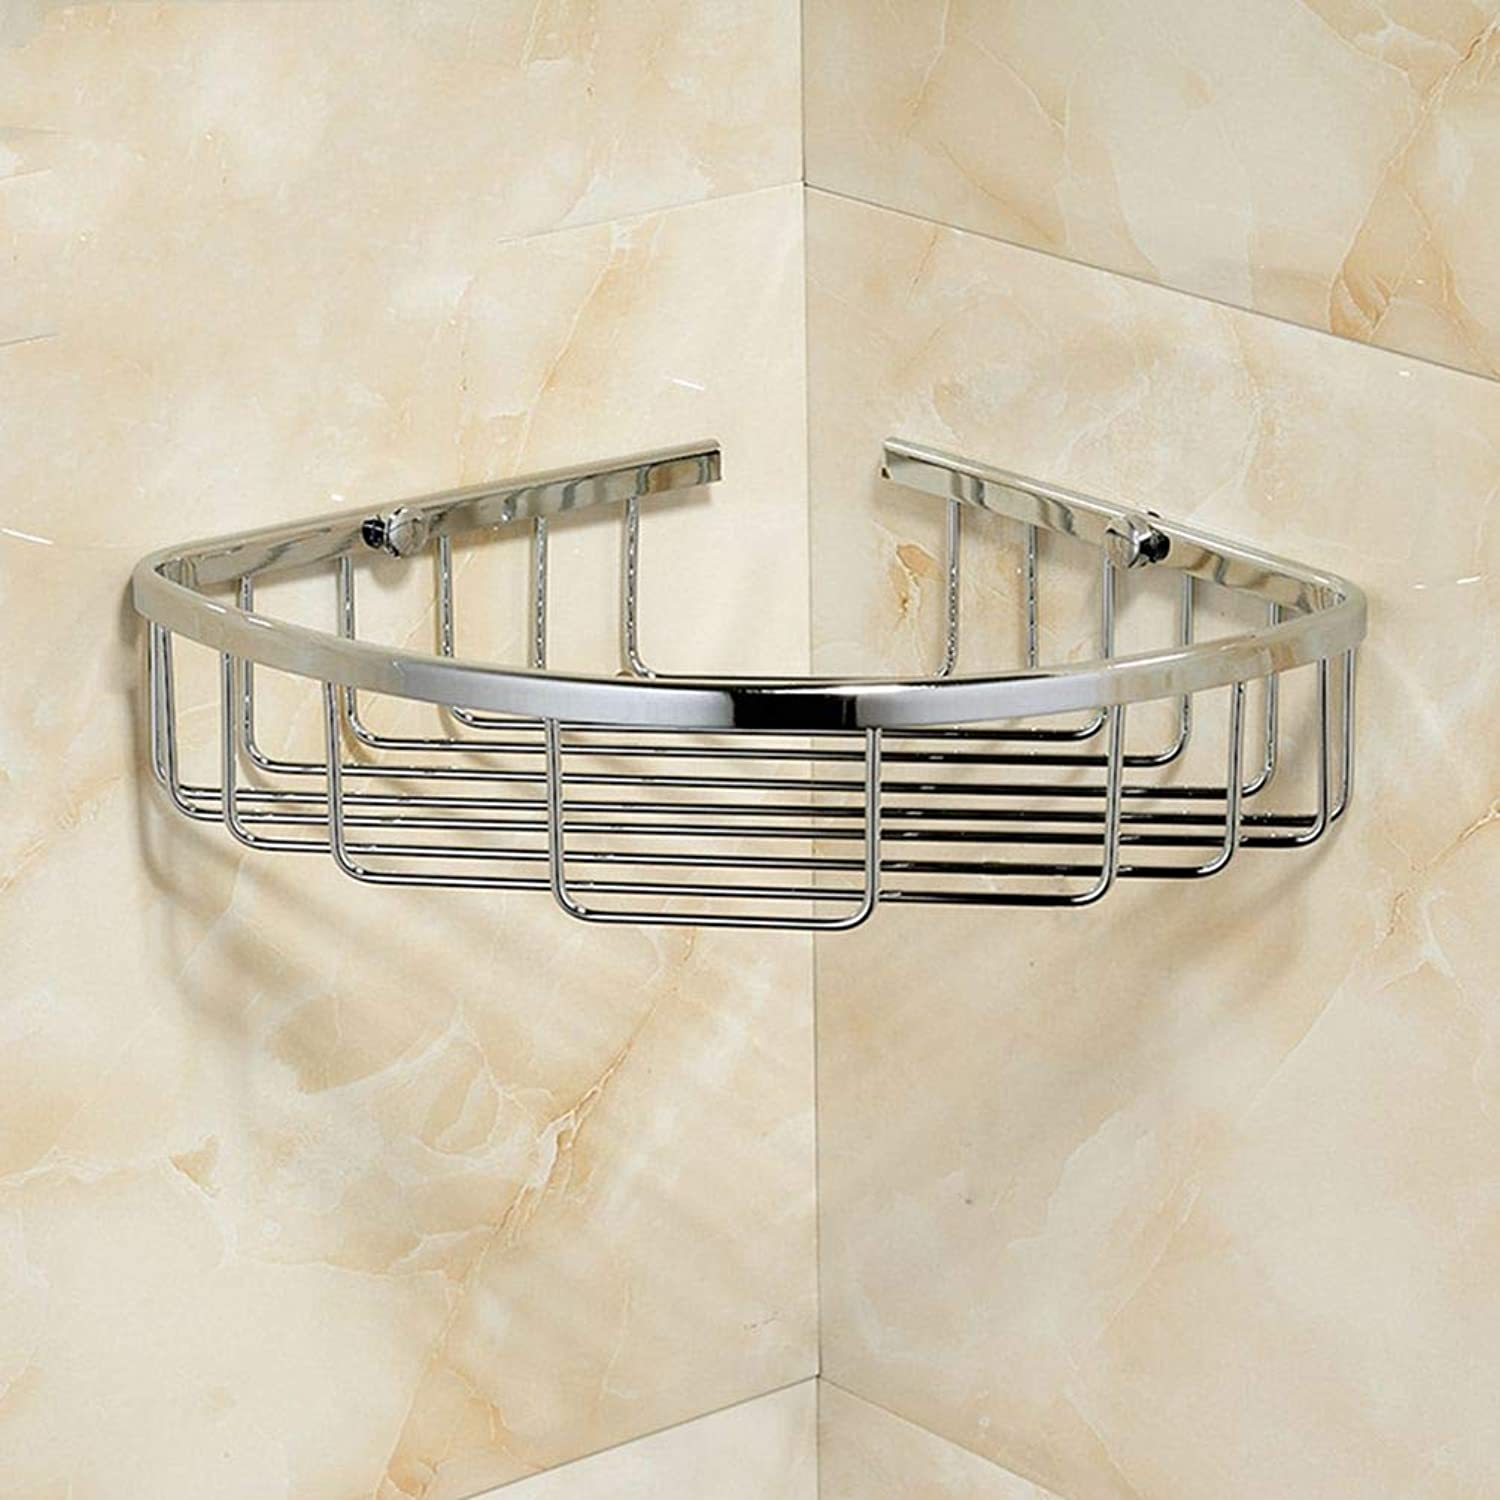 LUDSUY All Copper Chrome Bathroom Minimalist Bathroom Toilet Basket Monolayer Triangular Corner Shelf Wall Shelf